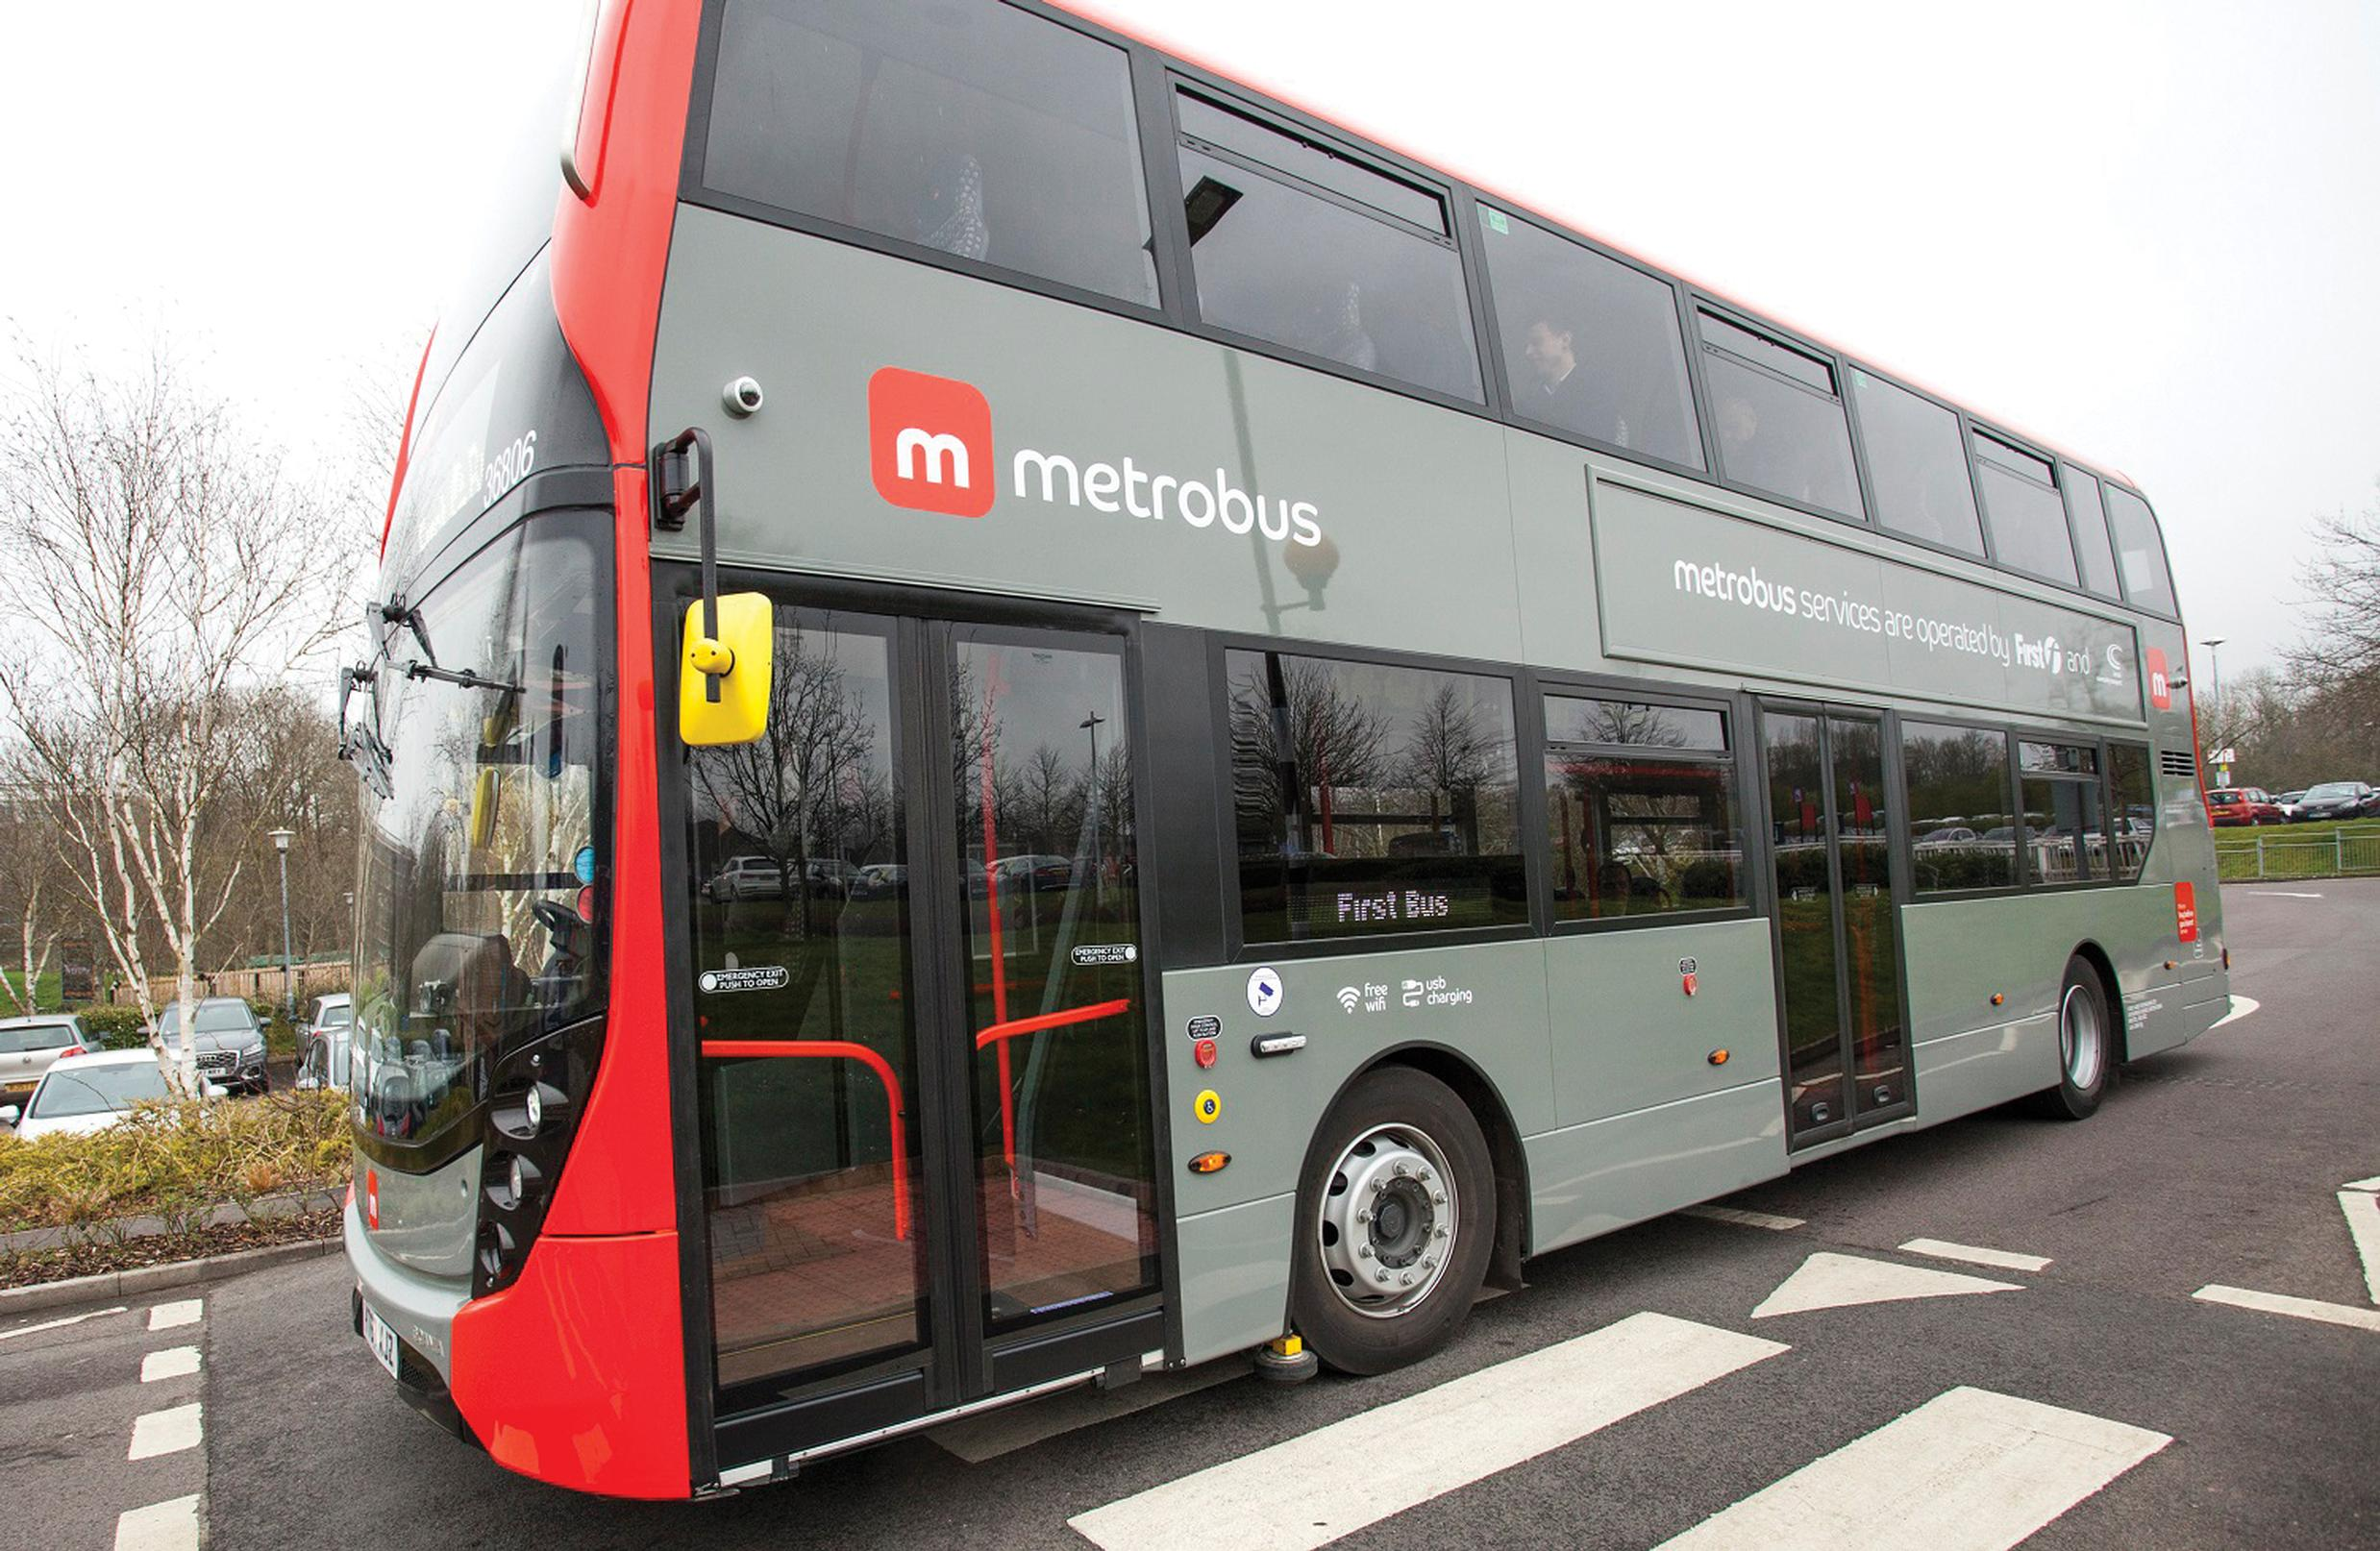 Bristol Metrobus is ready to roll